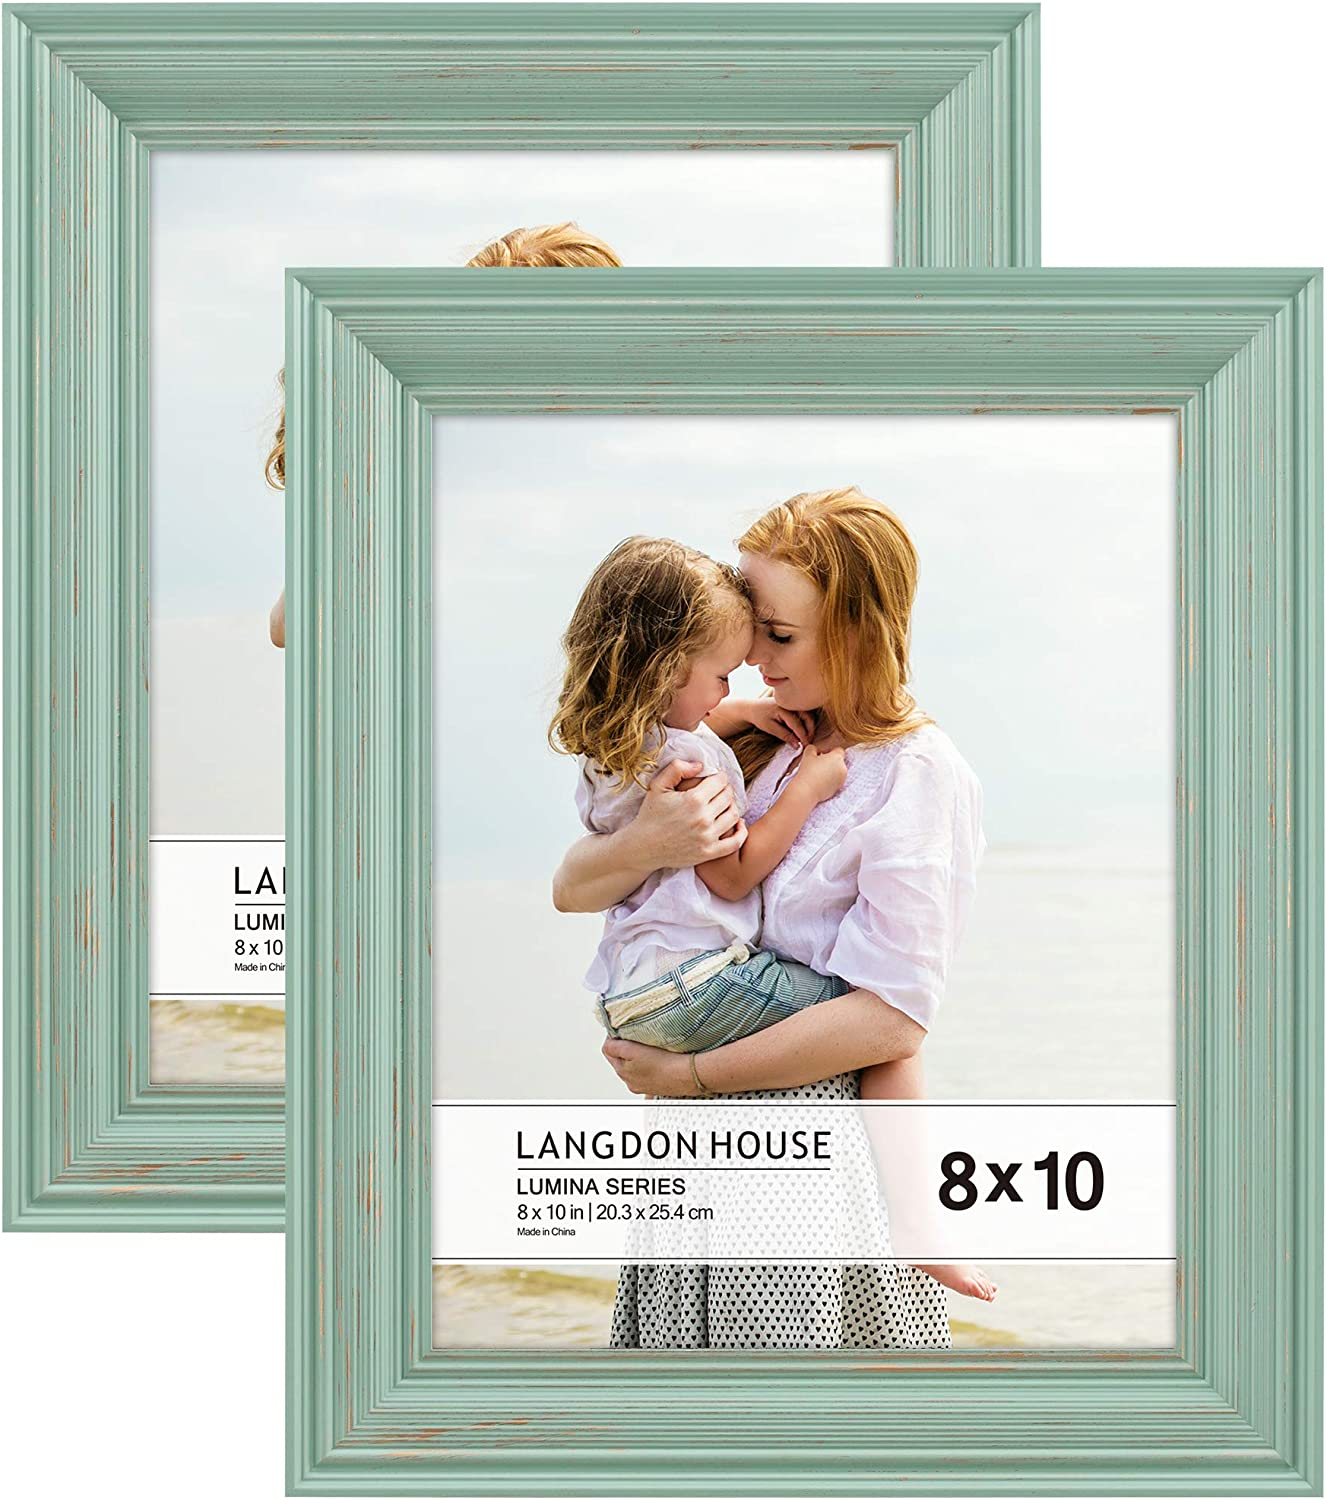 Langdon House 8x10 20x25 Cm Real Wood Picture Frames Eggshell Blue Gold Accents 2 Pack Wooden Photo Frame 8 X 10 Lumina Collection Amazon Ca Home Kitchen